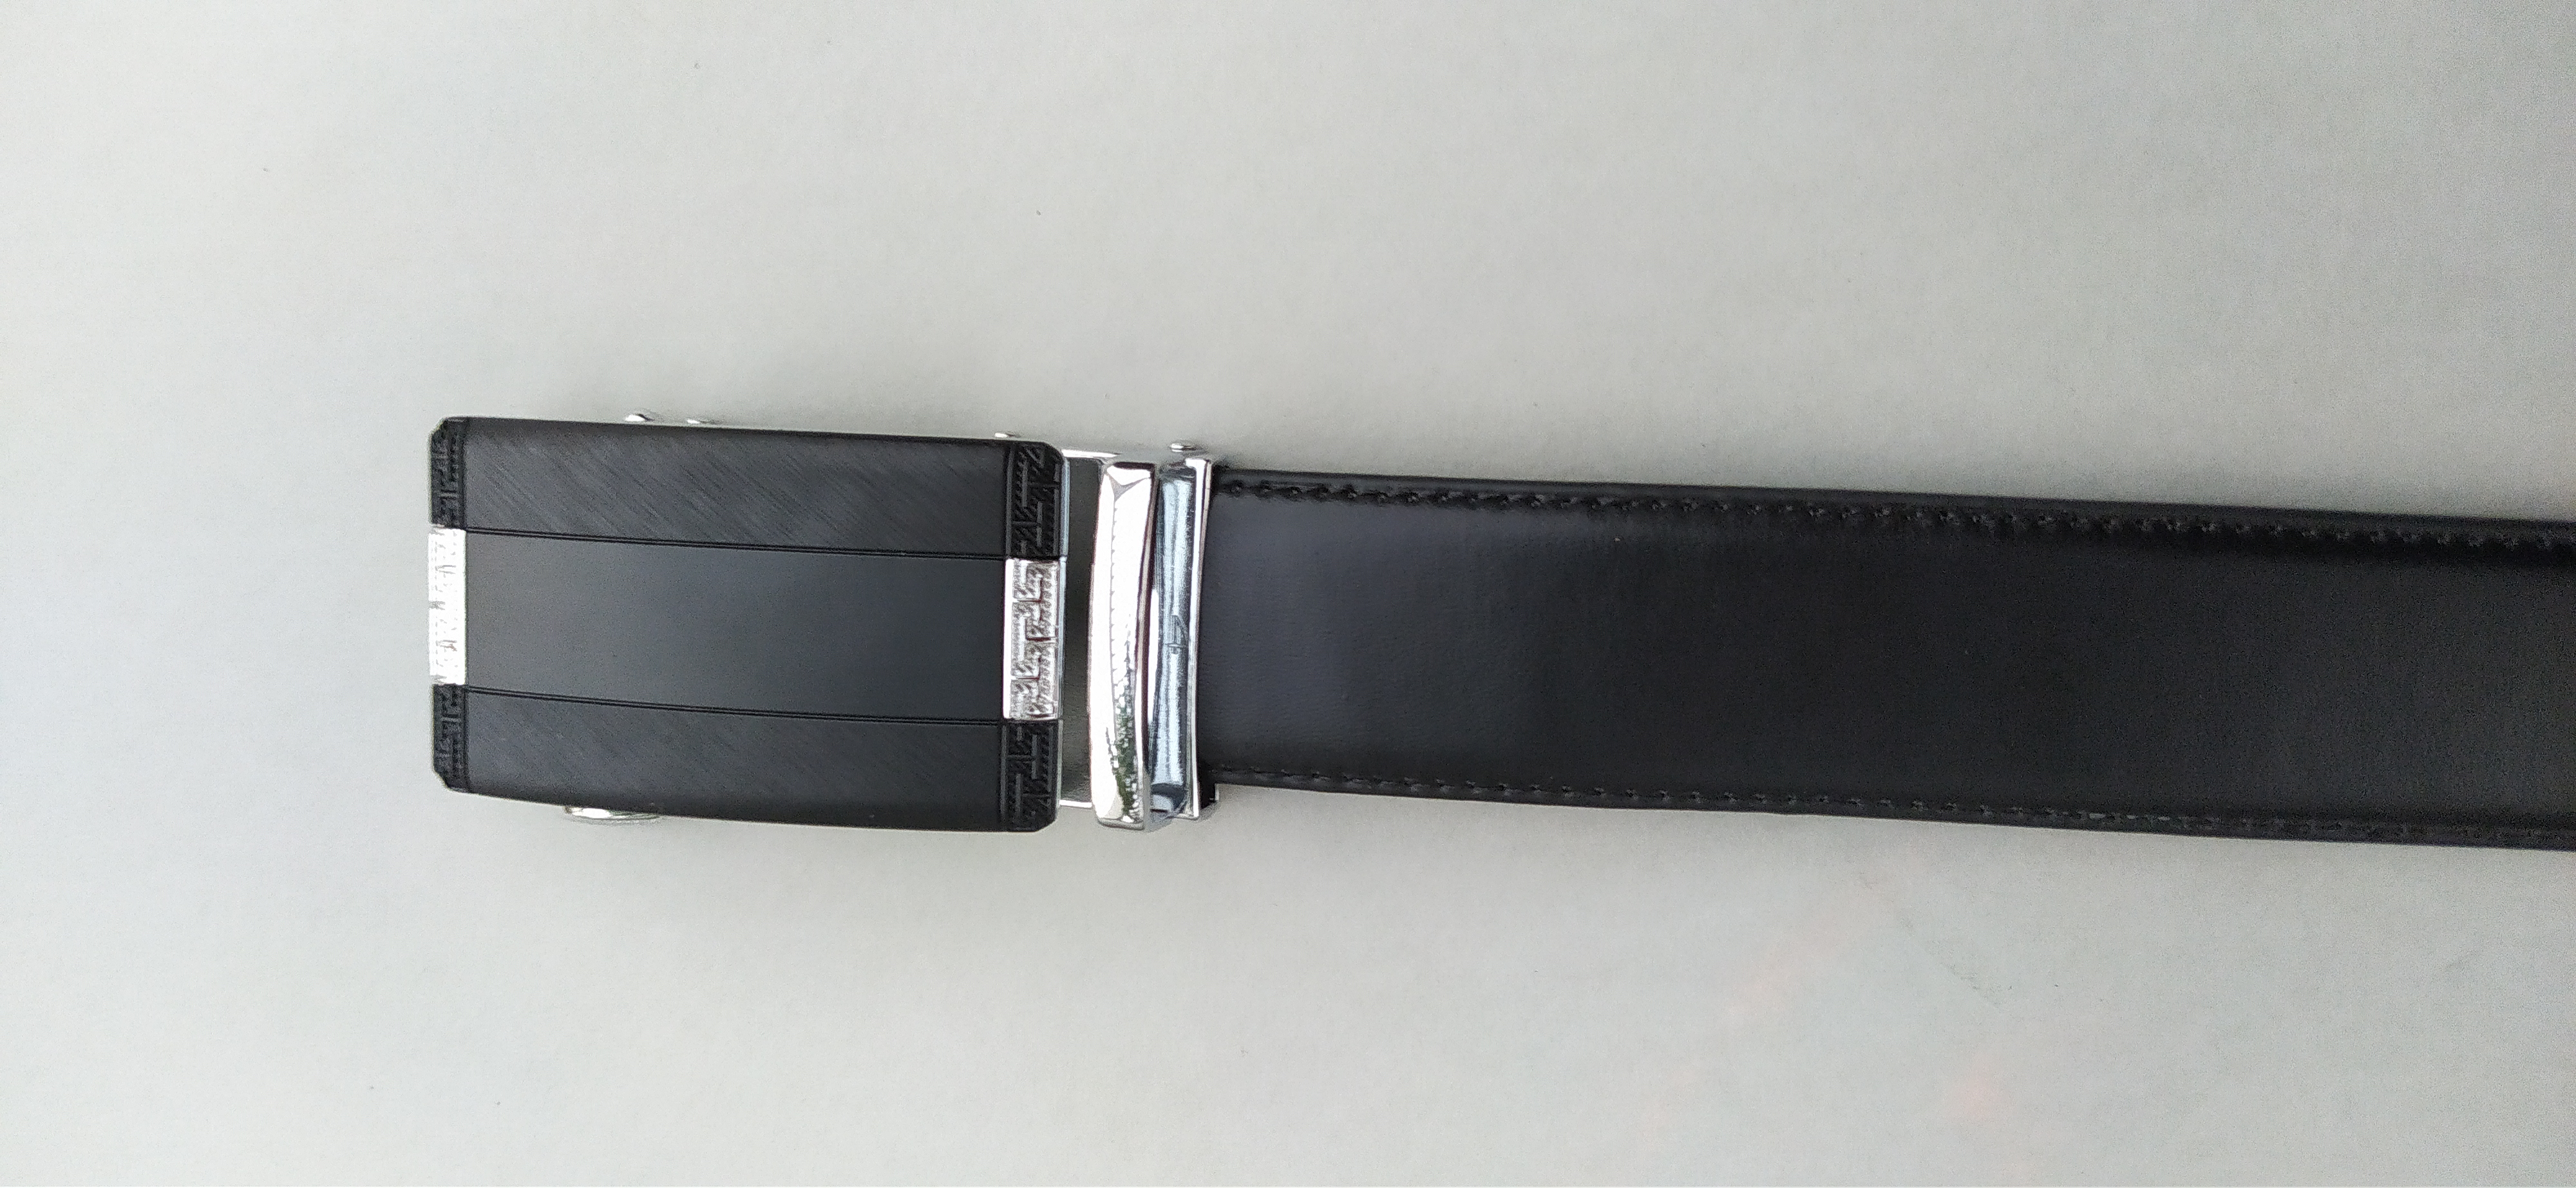 Tada pattern buckle smooth leather belt - Black 1